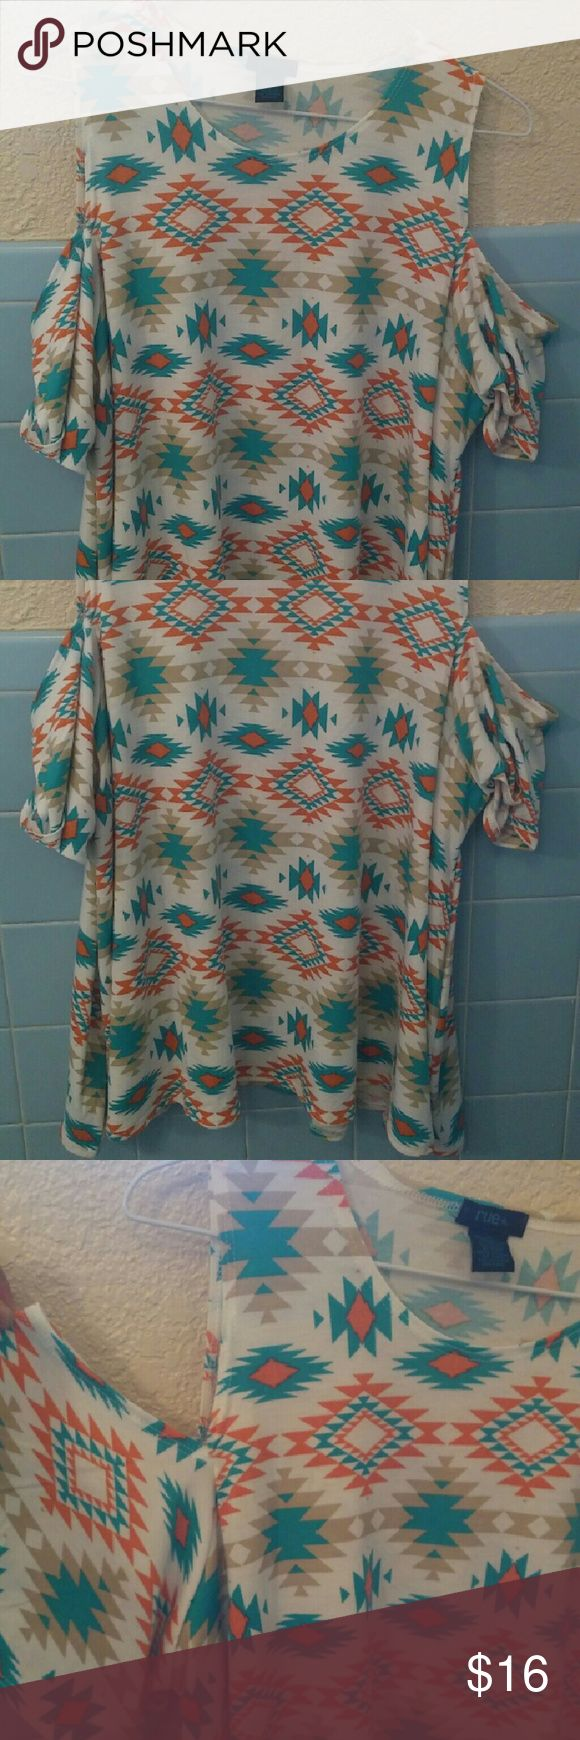 Aztec Print Blouse Rue 21 extremely cute aztec blouse. The shoulders are cut out and the blouse is light and flowy. Size says 1X but fits more like XL. Never worn out only to try on! Tops Blouses